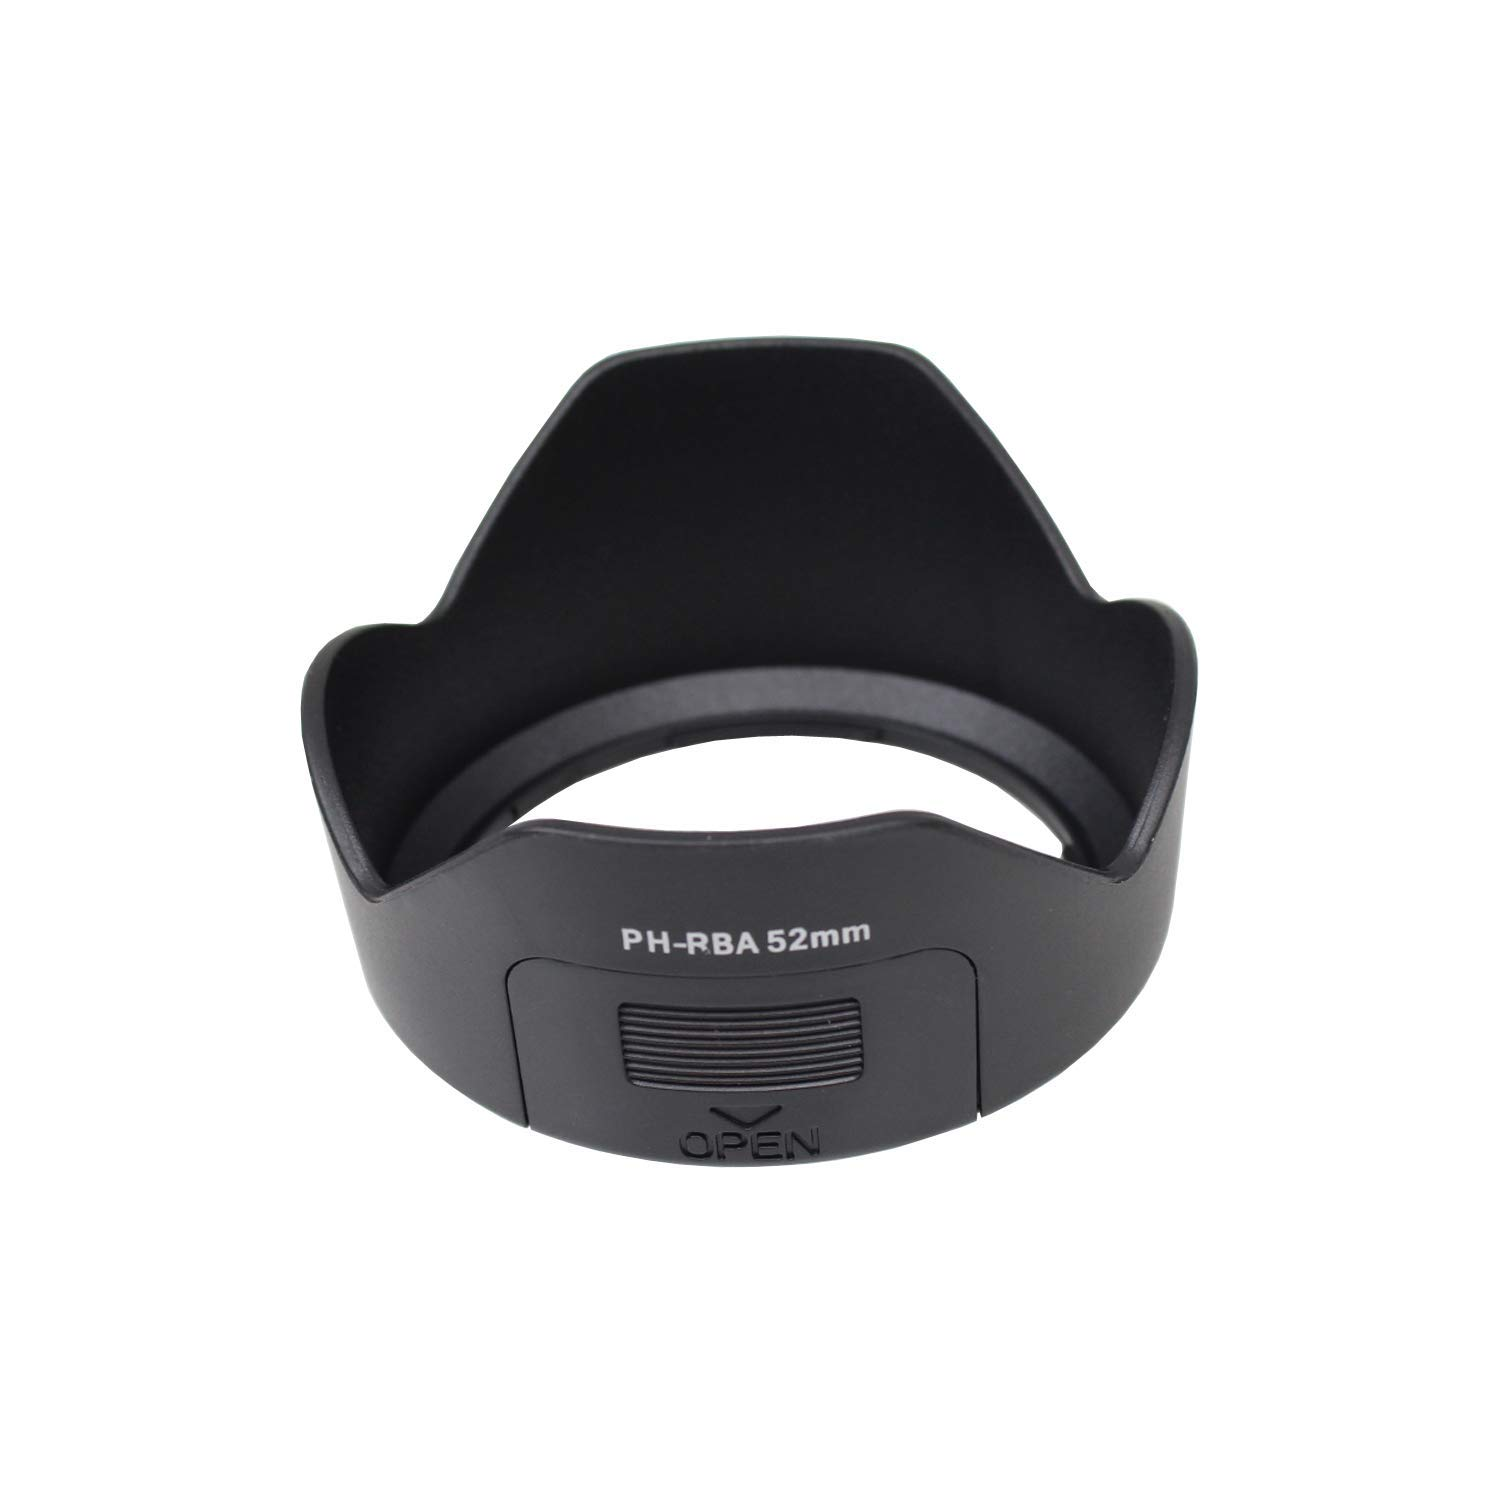 CamDesign 52mm Lens Hood Compatible with Pentax PH-RBA K10D//K20D//K100D//K110D//KX KM K30 K5II K7 DA 18-55mm F3.5-5.6KR Camera Lens